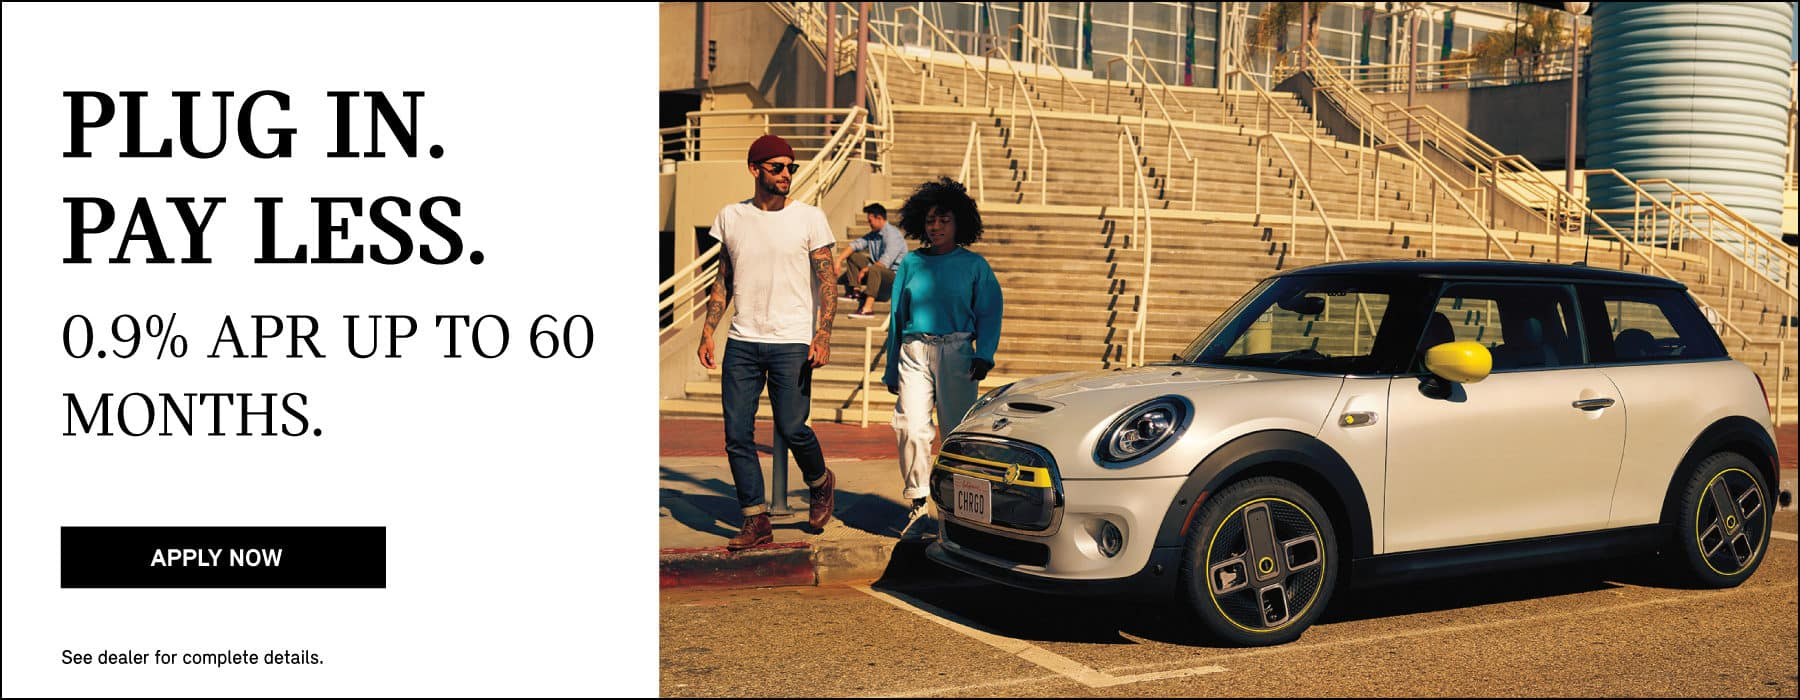 PLUG IN PAY LESS. 0.9% APR UP TO 60 MONTHS. APPLY NOW BUTTON.